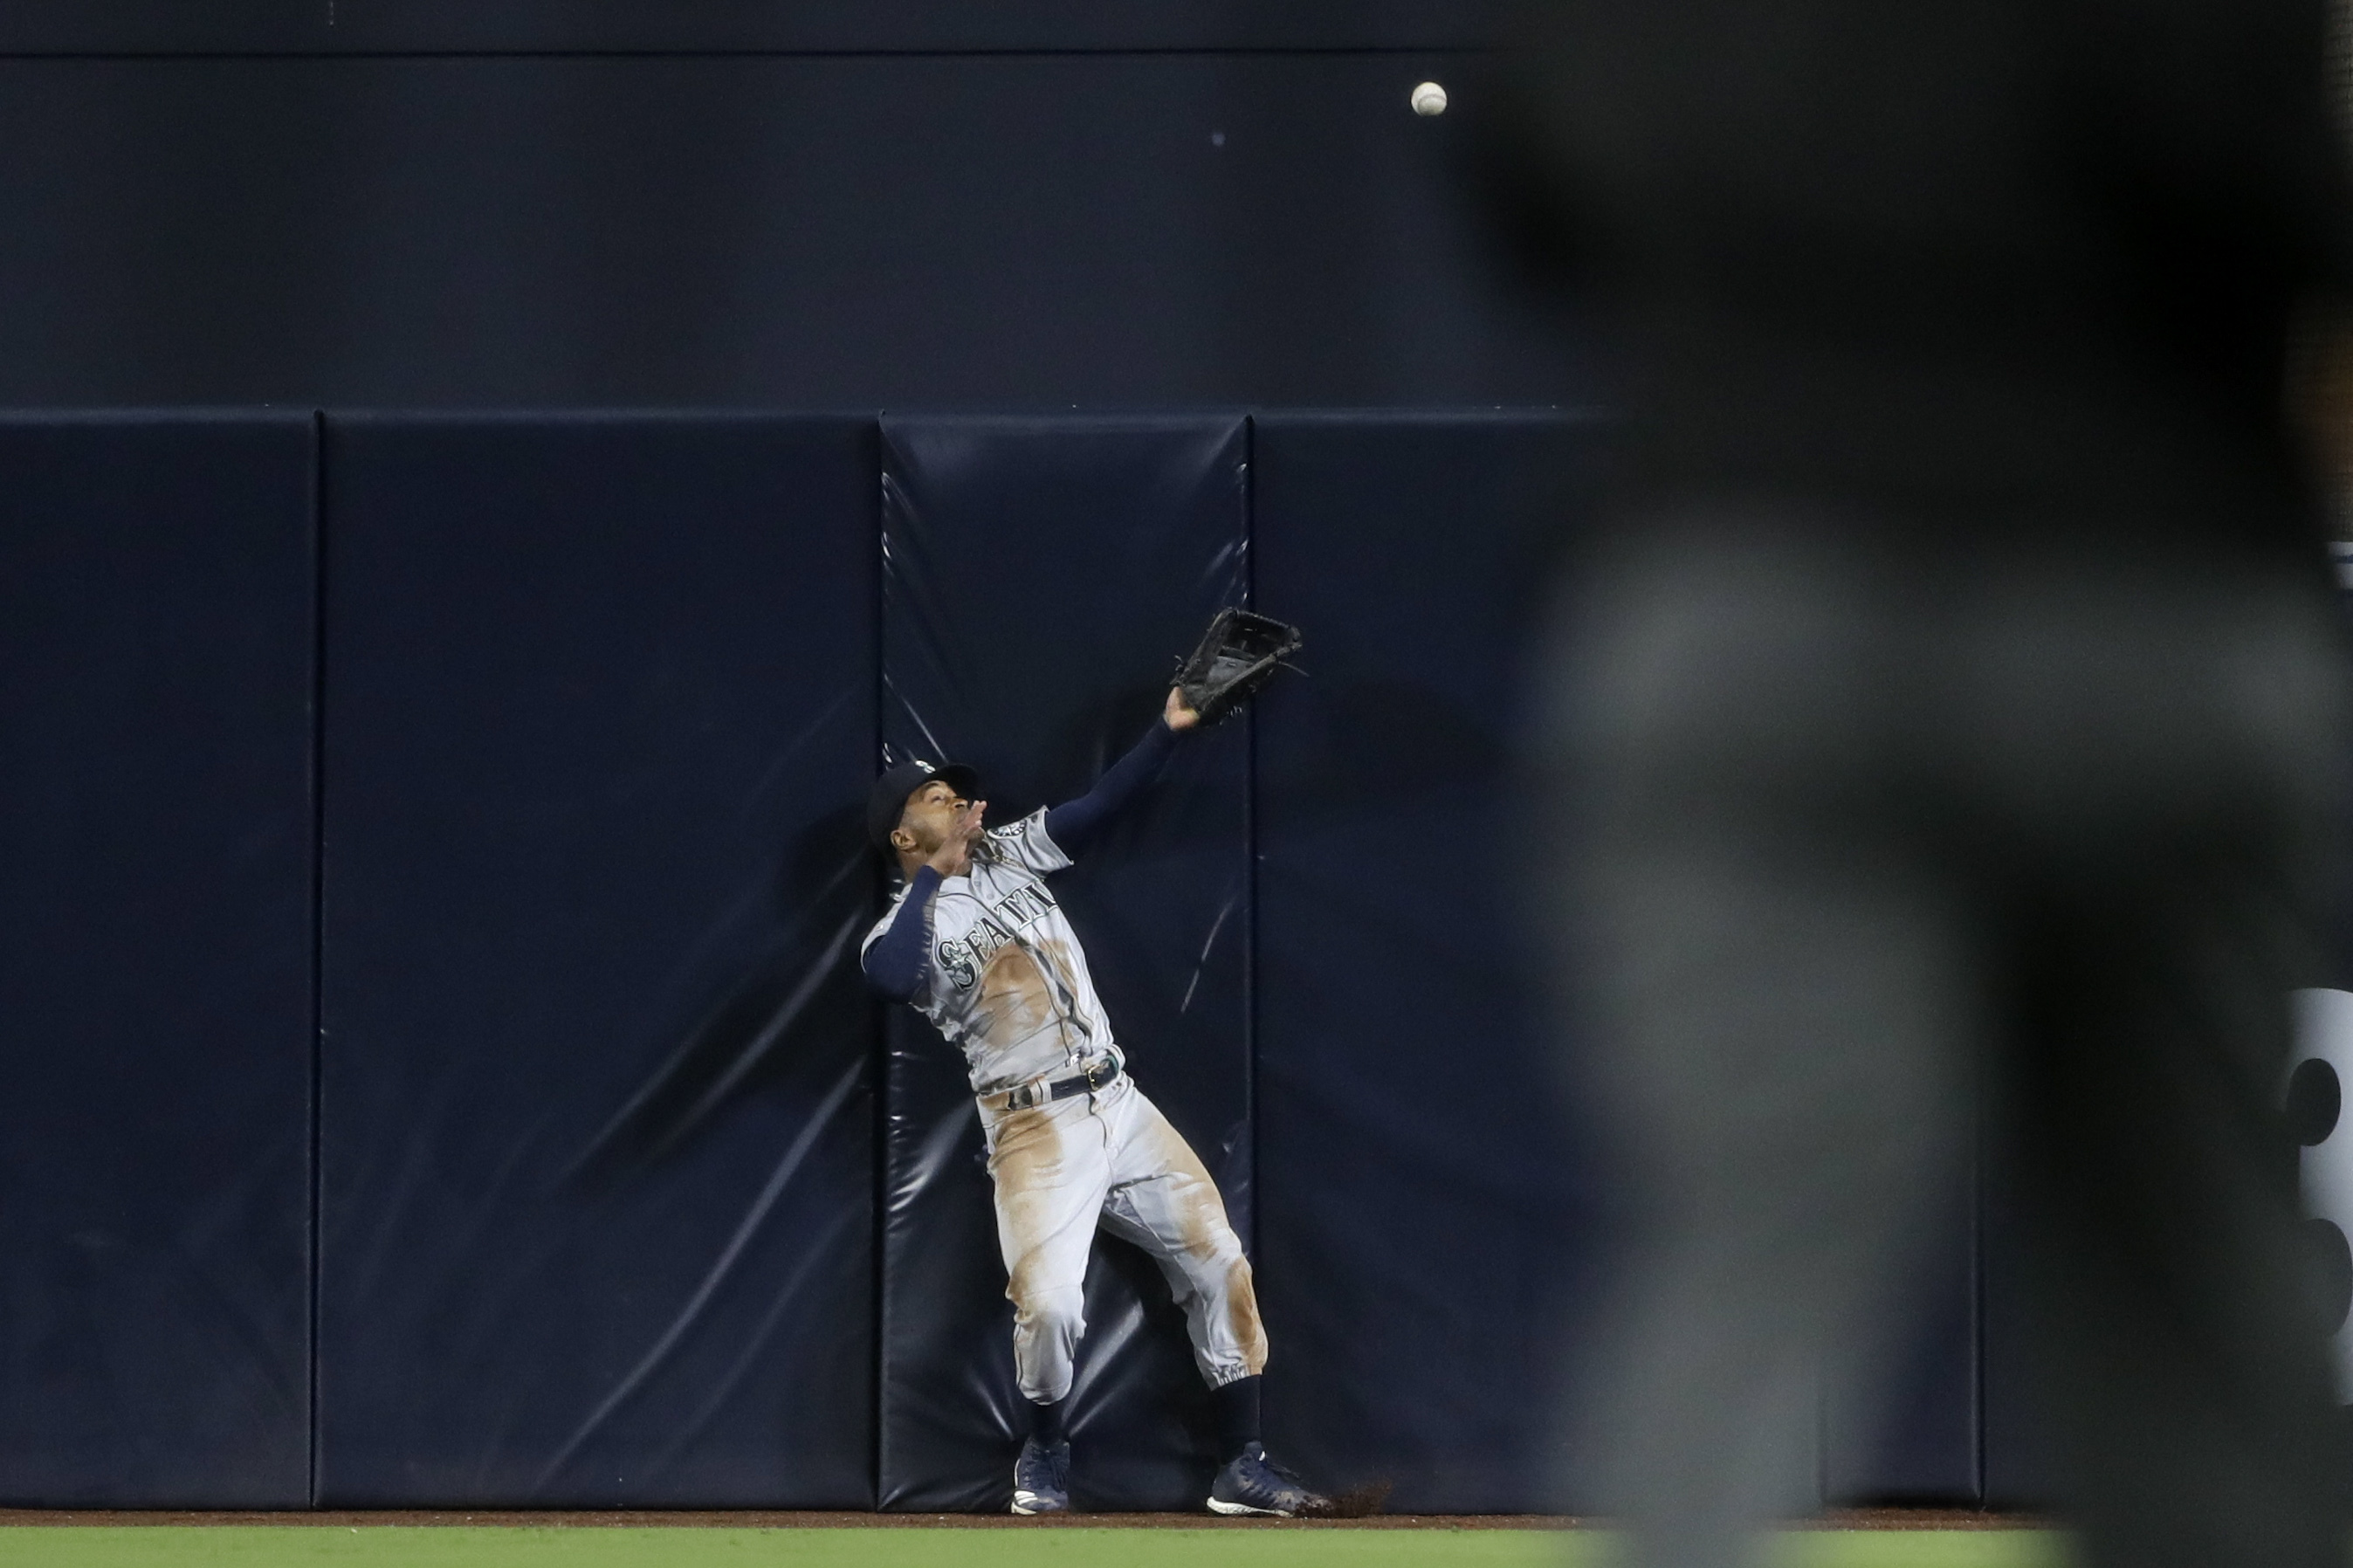 Hedges' homer bounces off Smith's glove in Padres' 6-3 win